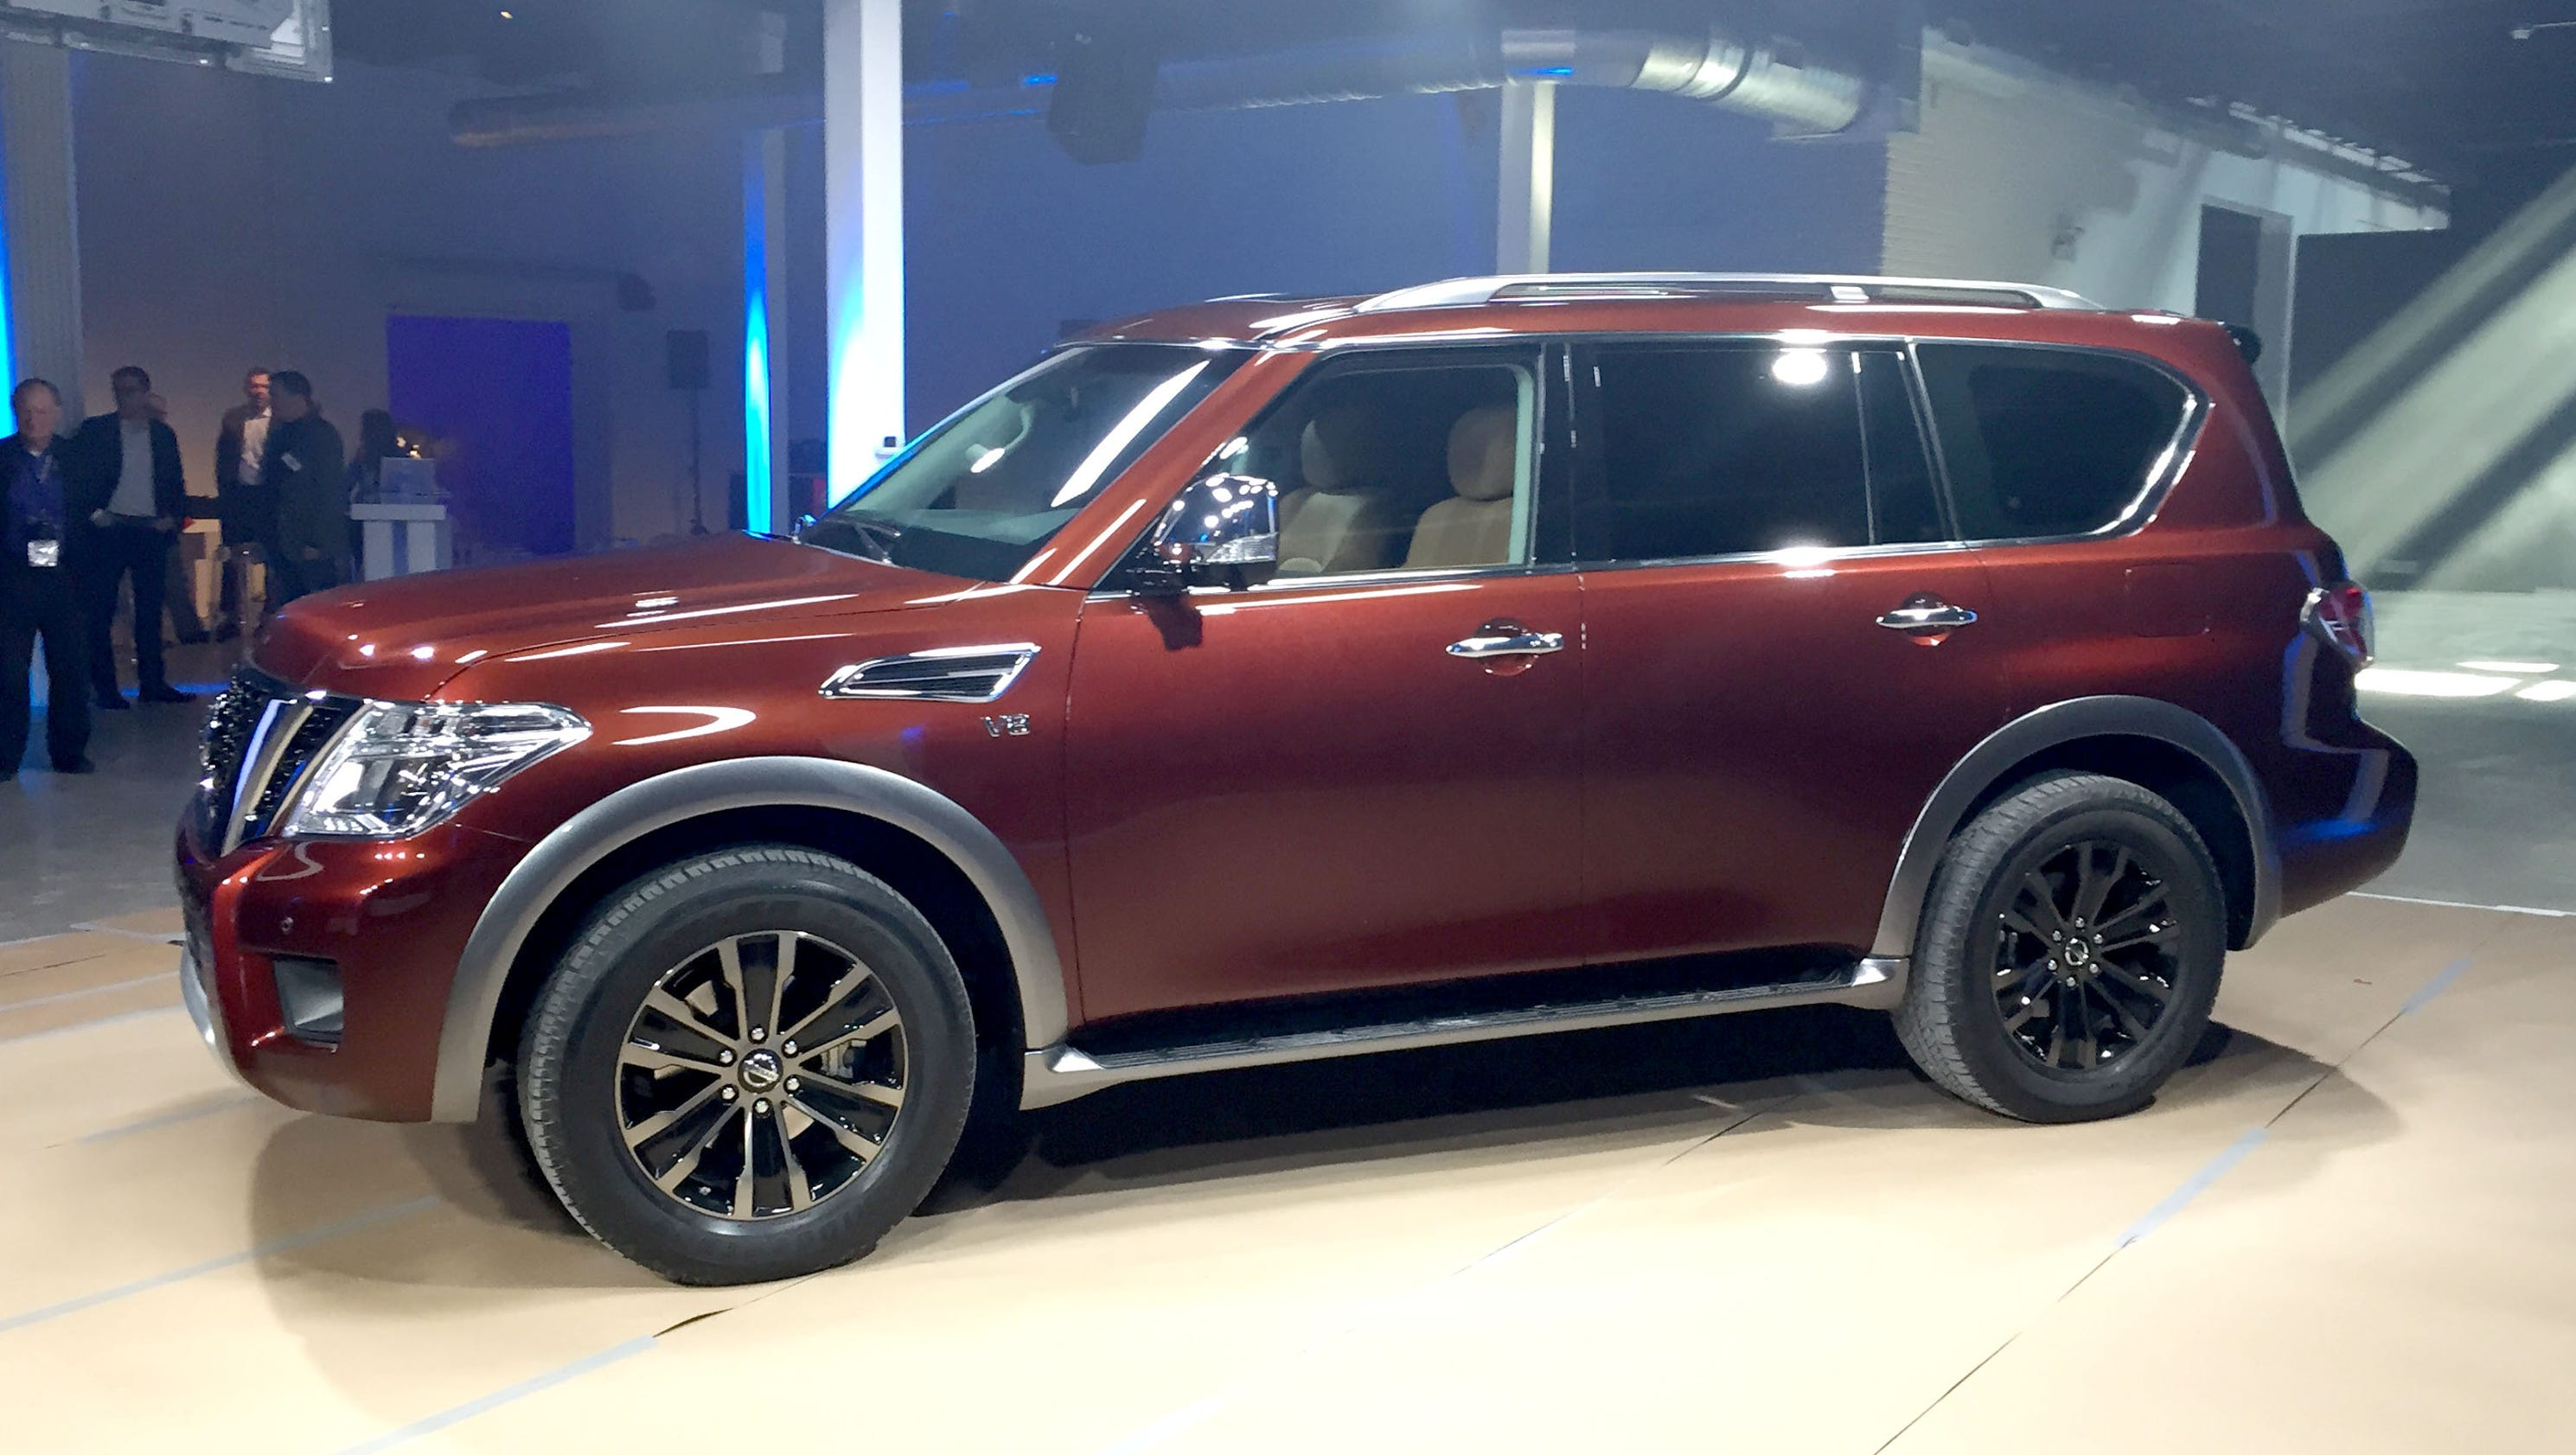 price nissan depth armada original reviews s model car in photos driver review specs and photo